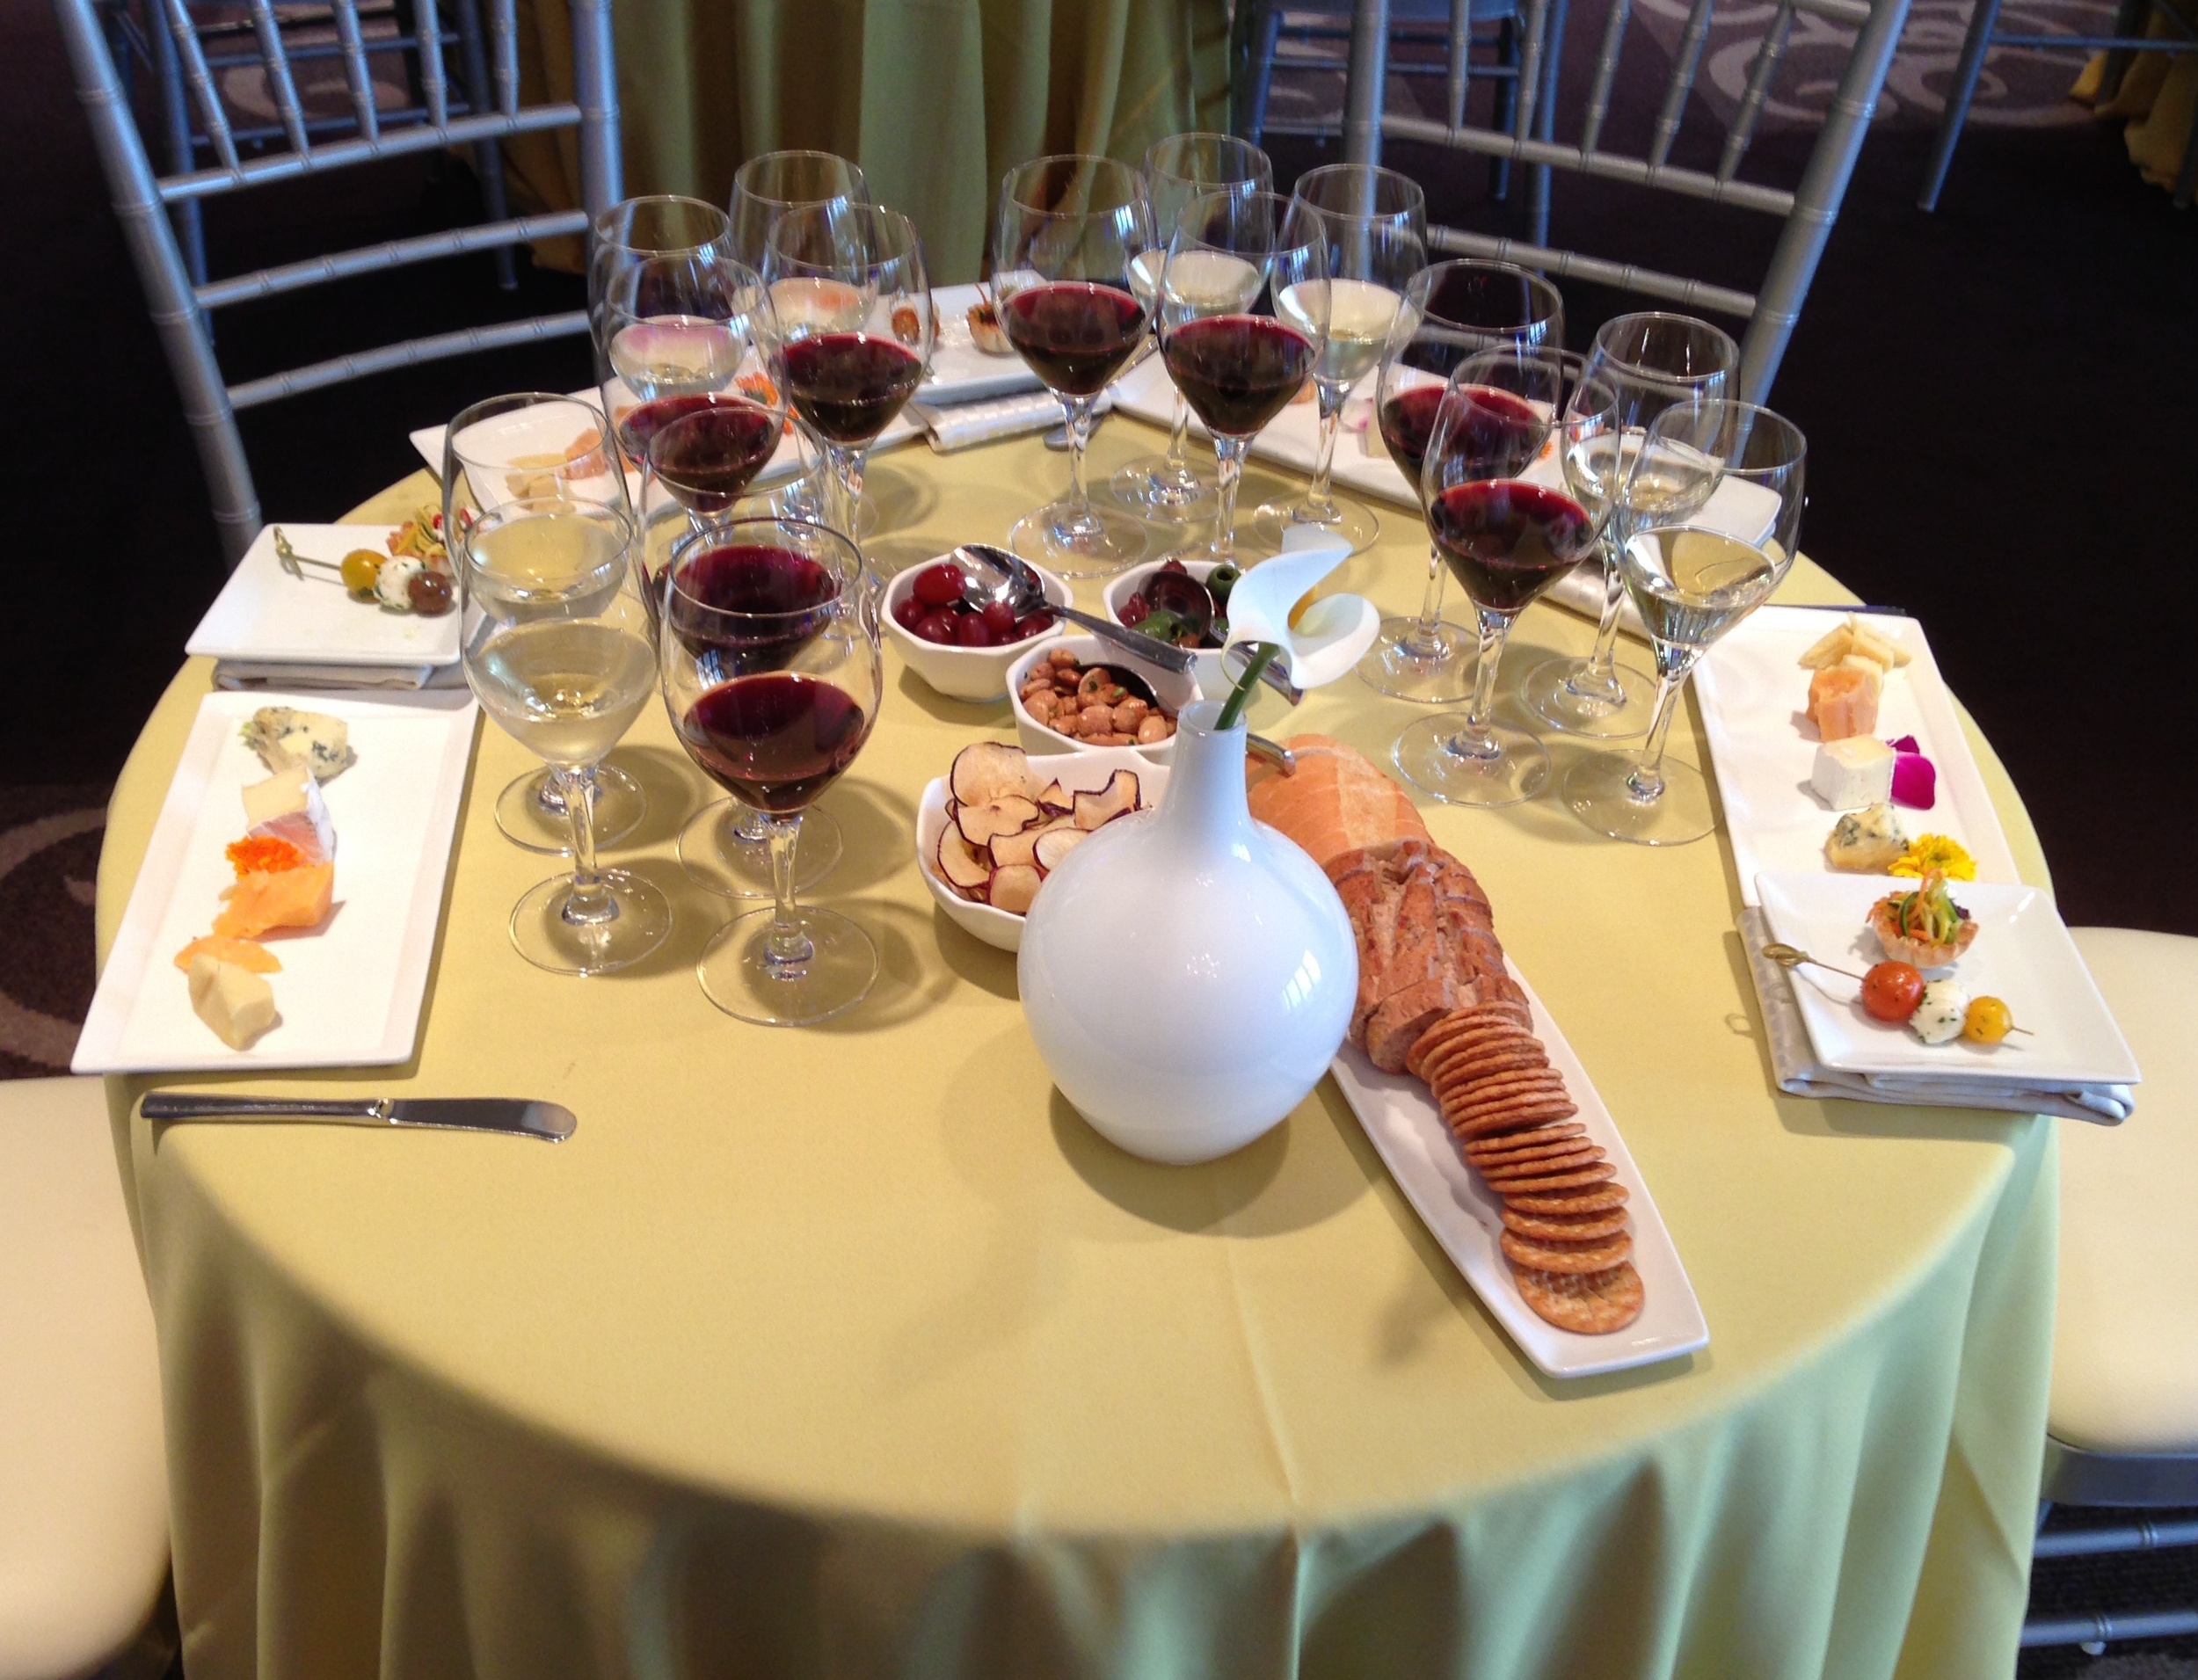 Wine party ideas Hawaii learn about wine: blind-tasting classes and seminars